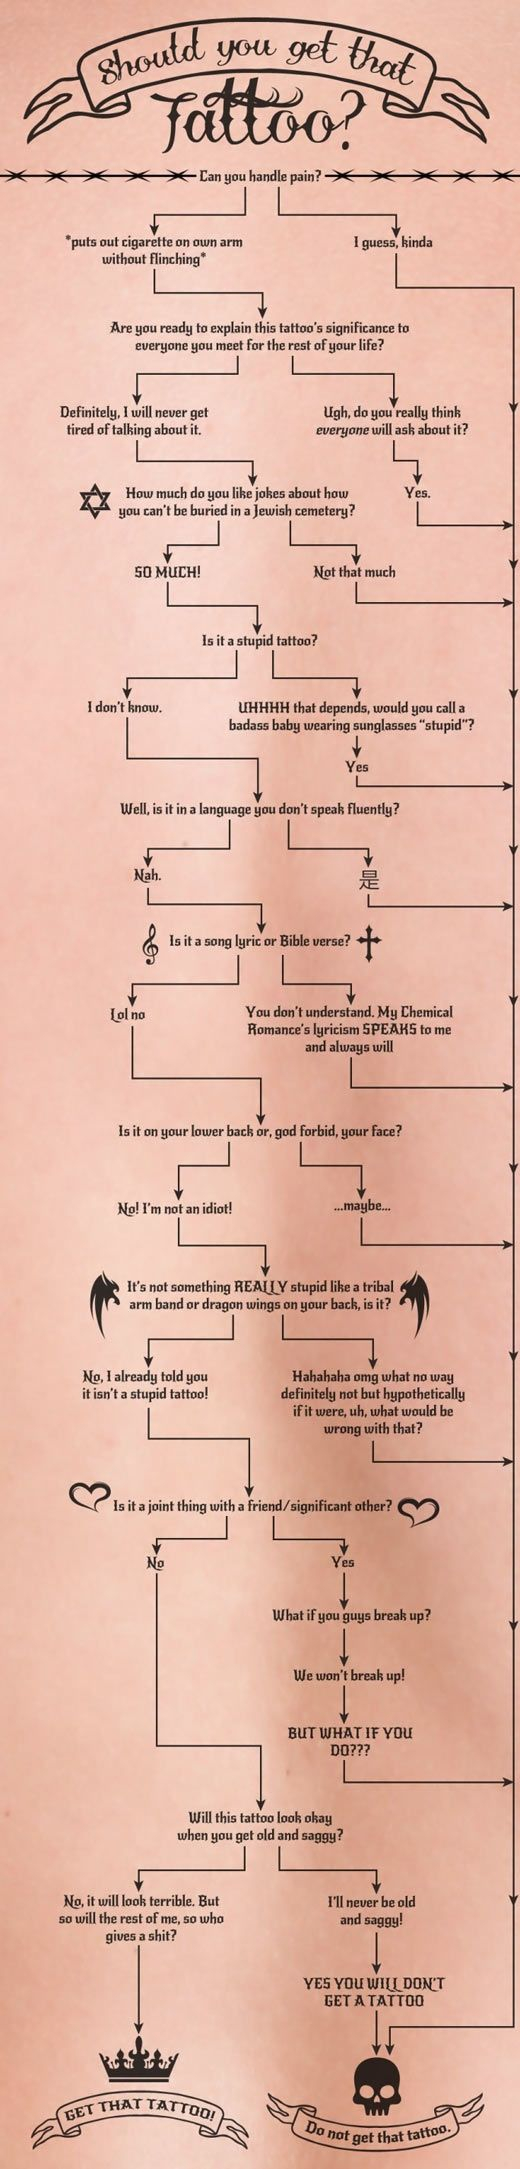 Should you get that tattoo